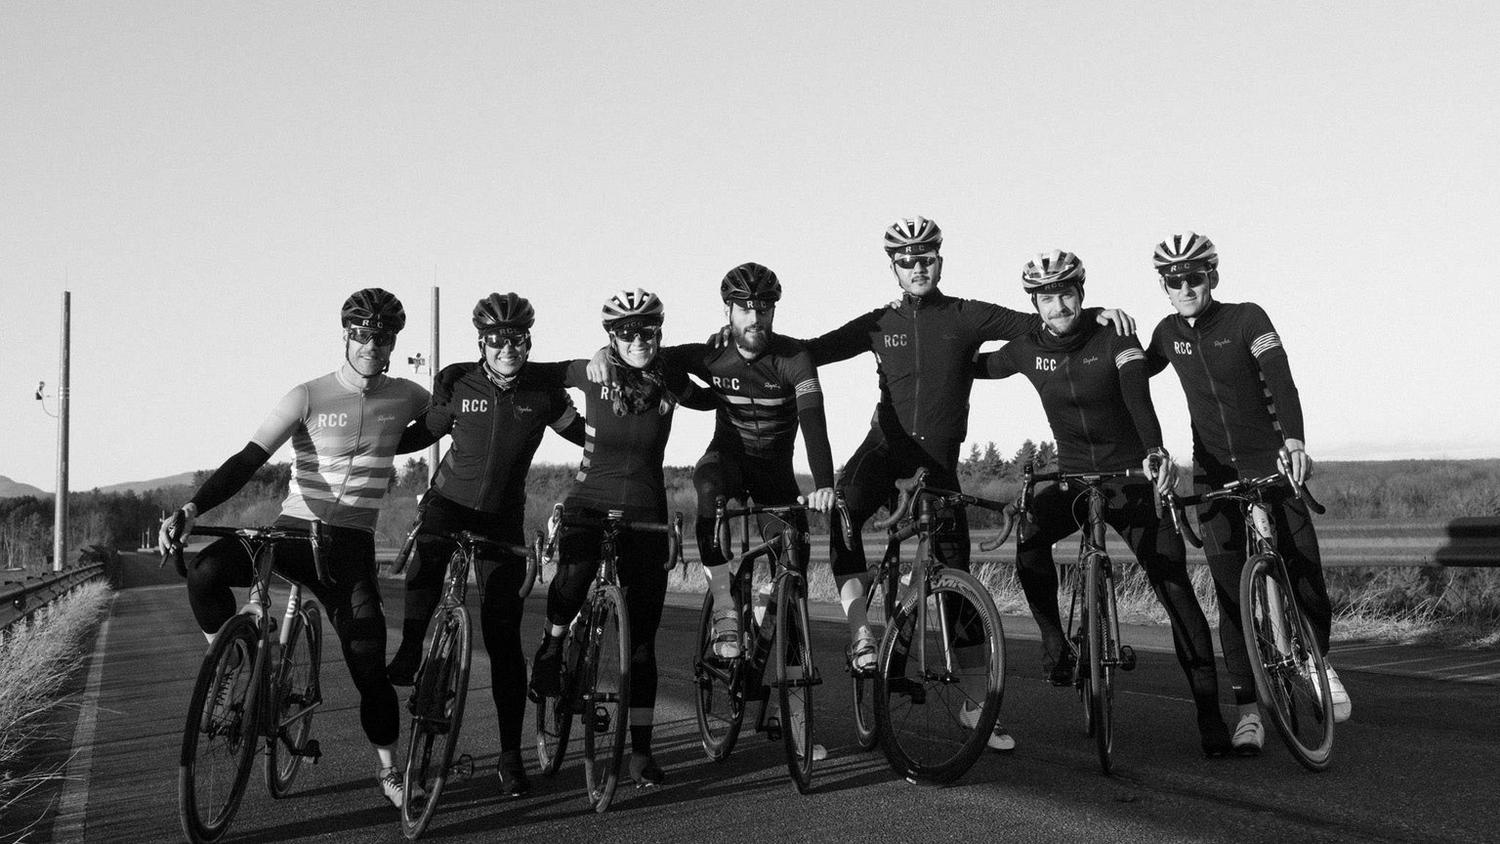 Meet the seven riders who came together for the Rapha Cycling Club's trip to New York State.